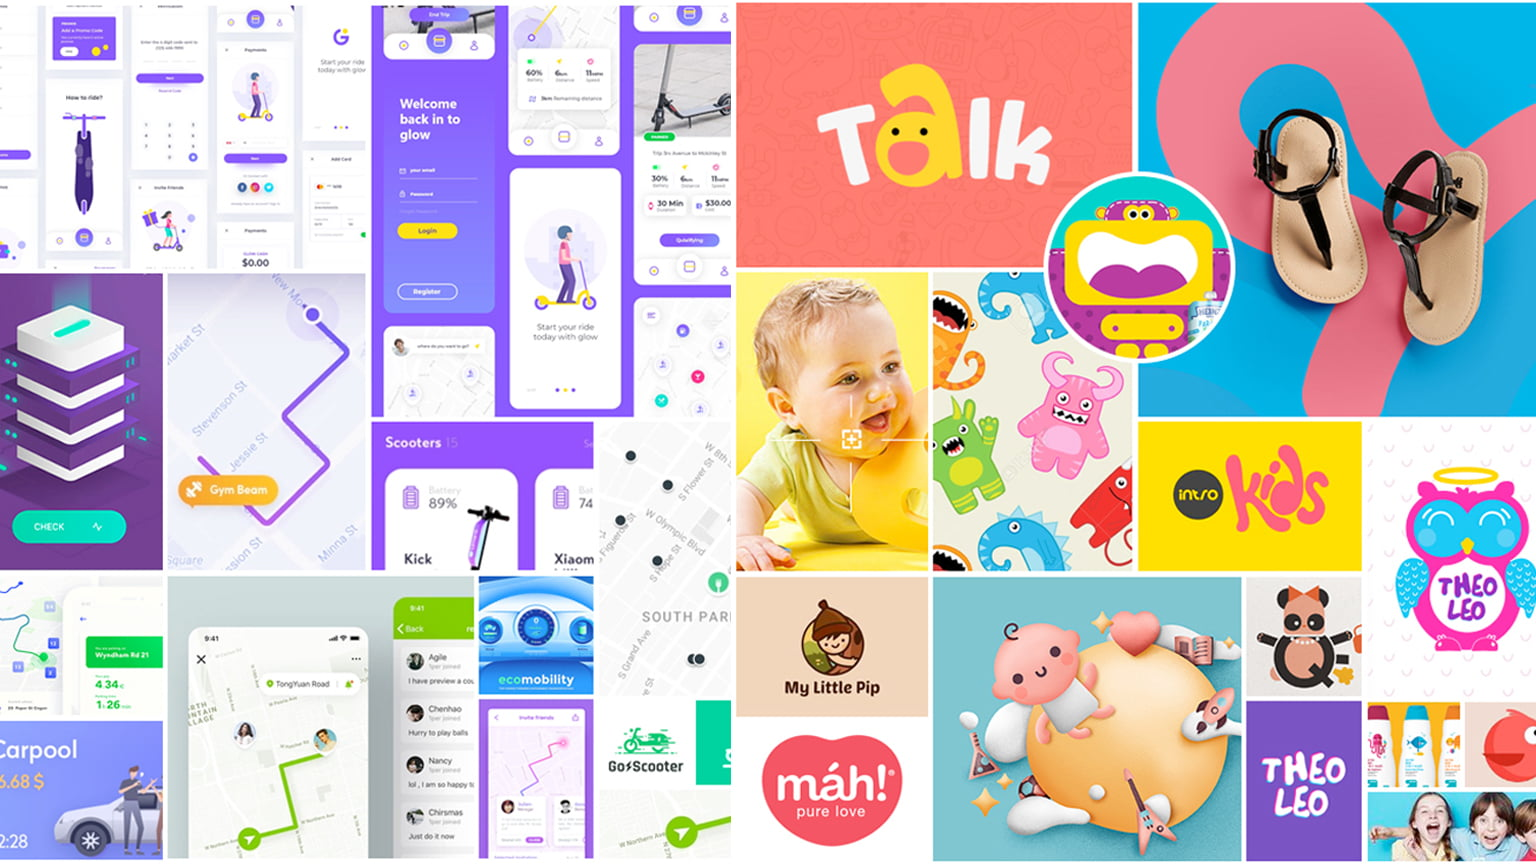 Moodboard In Ux Ui Mobile App Design Inspiration Matters Itcraft